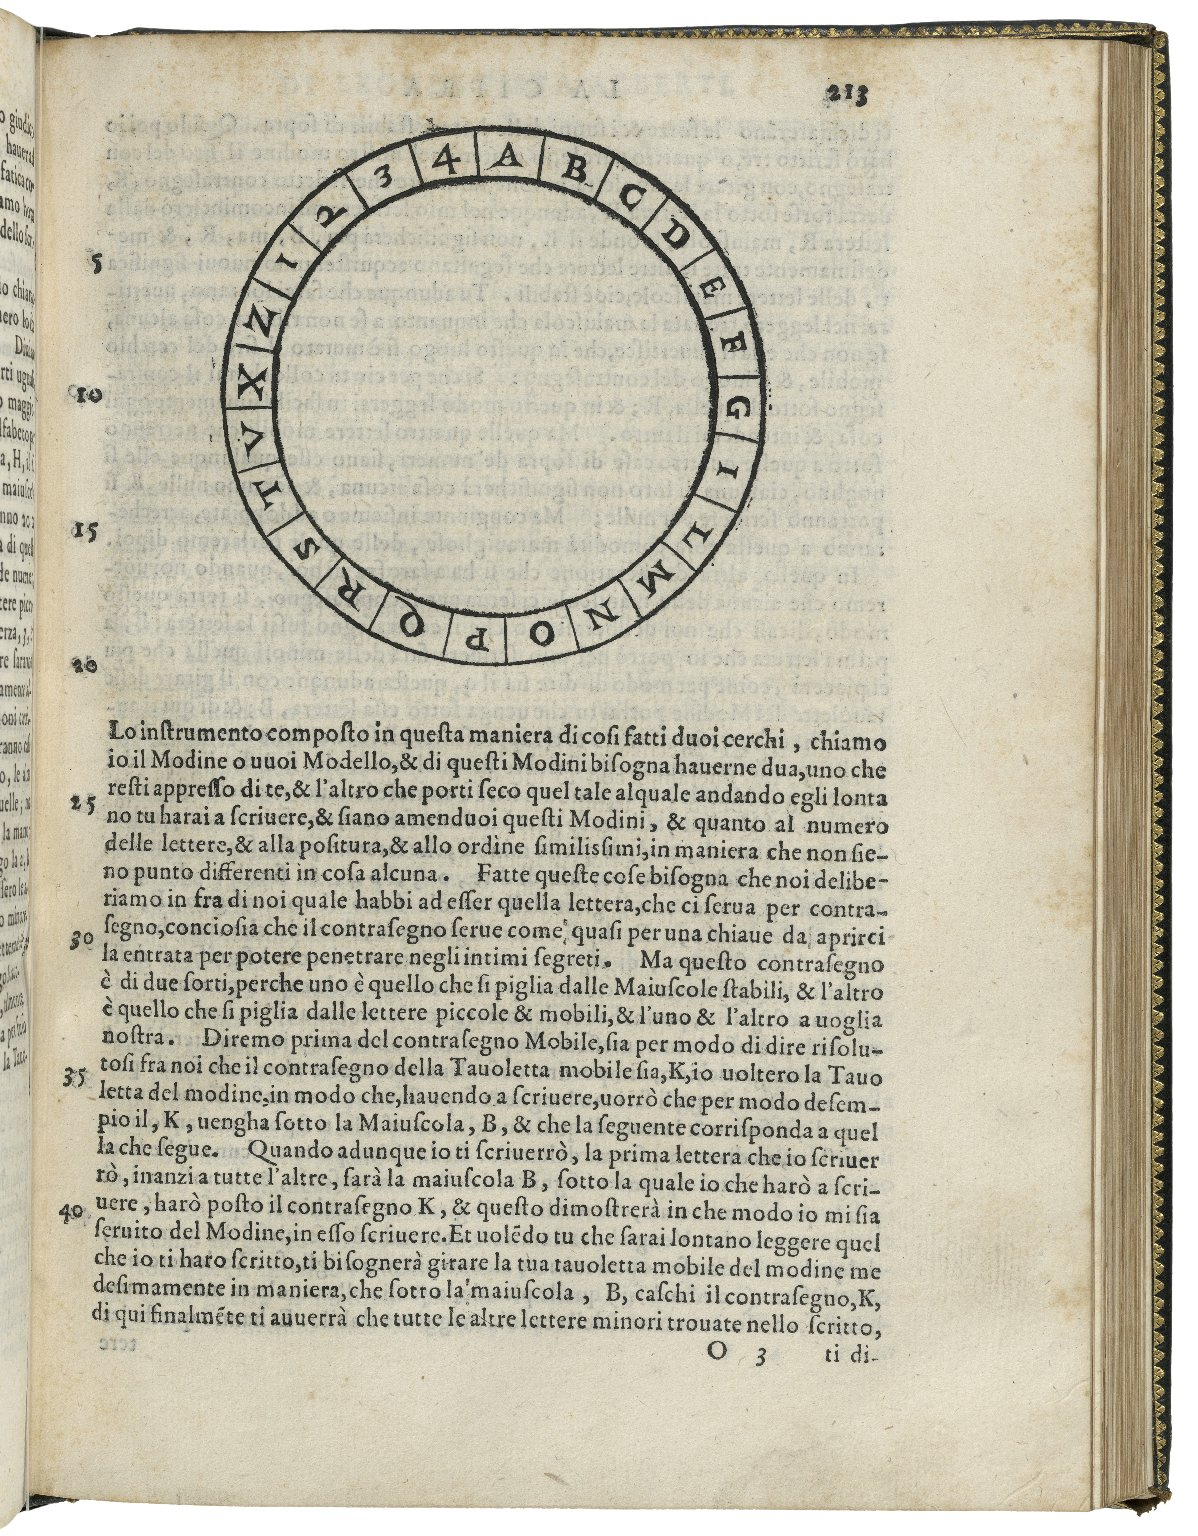 page 213 in Opuscoli morali, with circle Alphabet